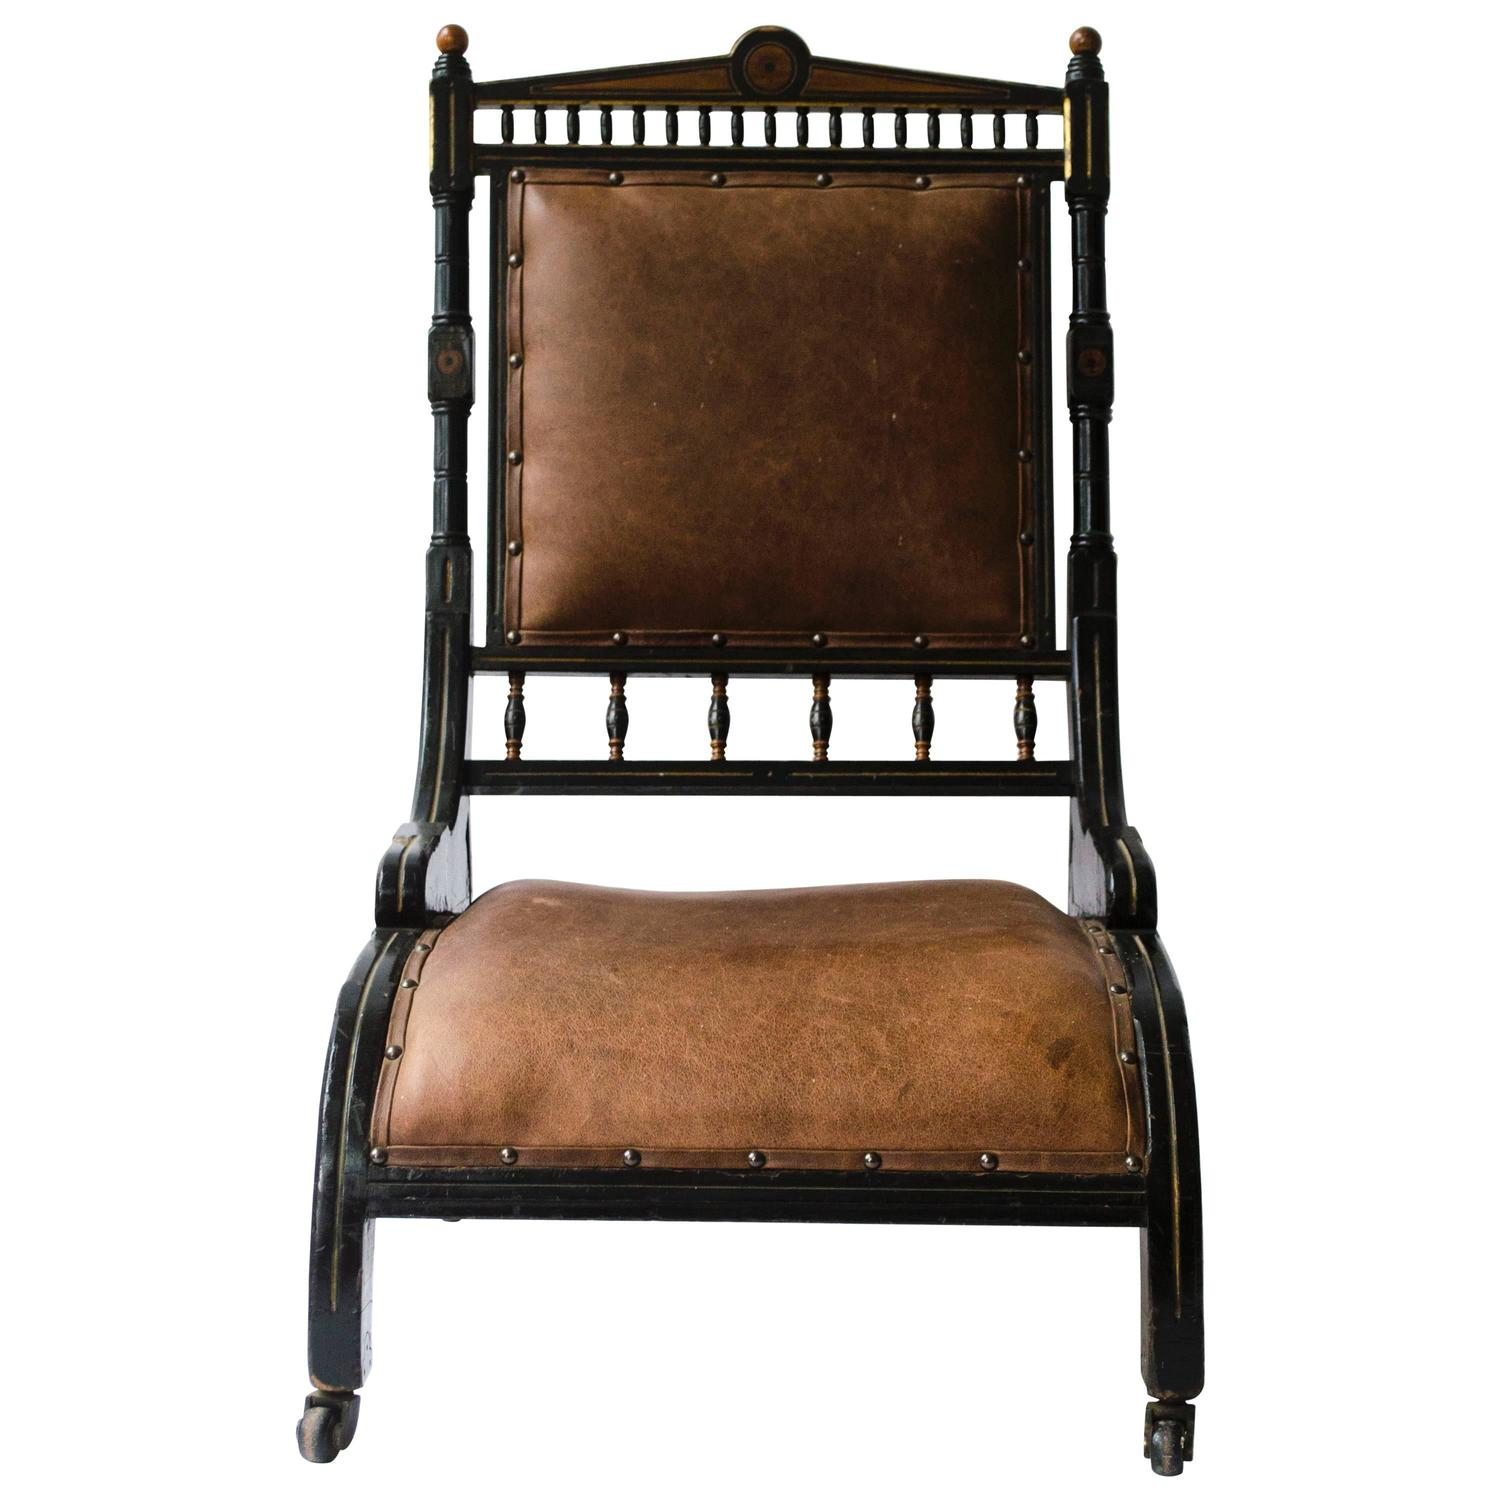 Aesthetic Movement Ebonized Chair By R Charles For Sale At